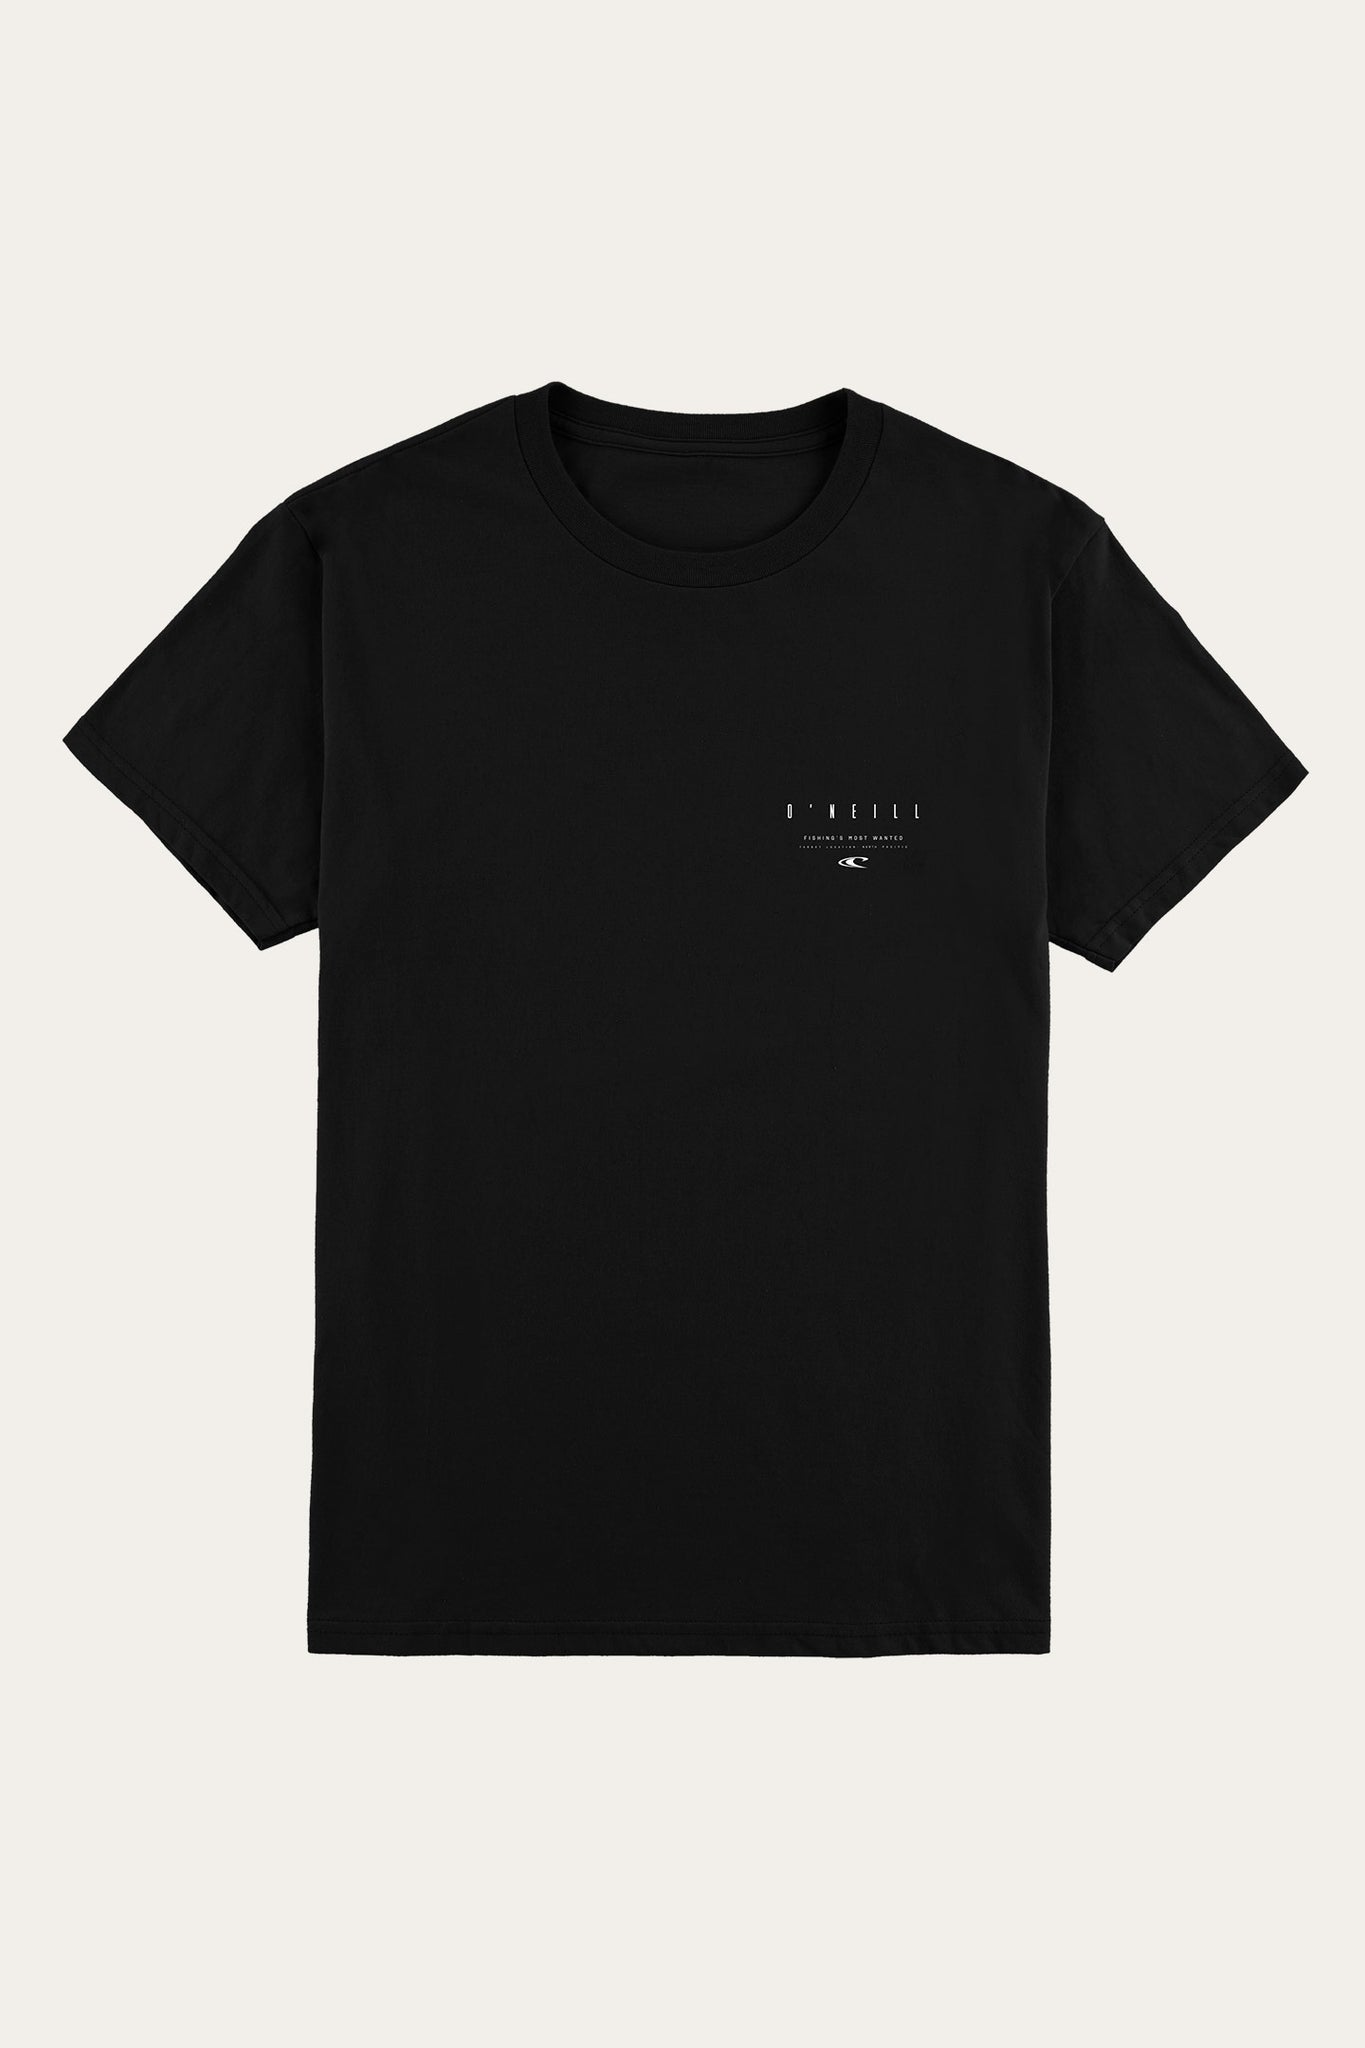 Most Wanted Tee - Black | O'Neill